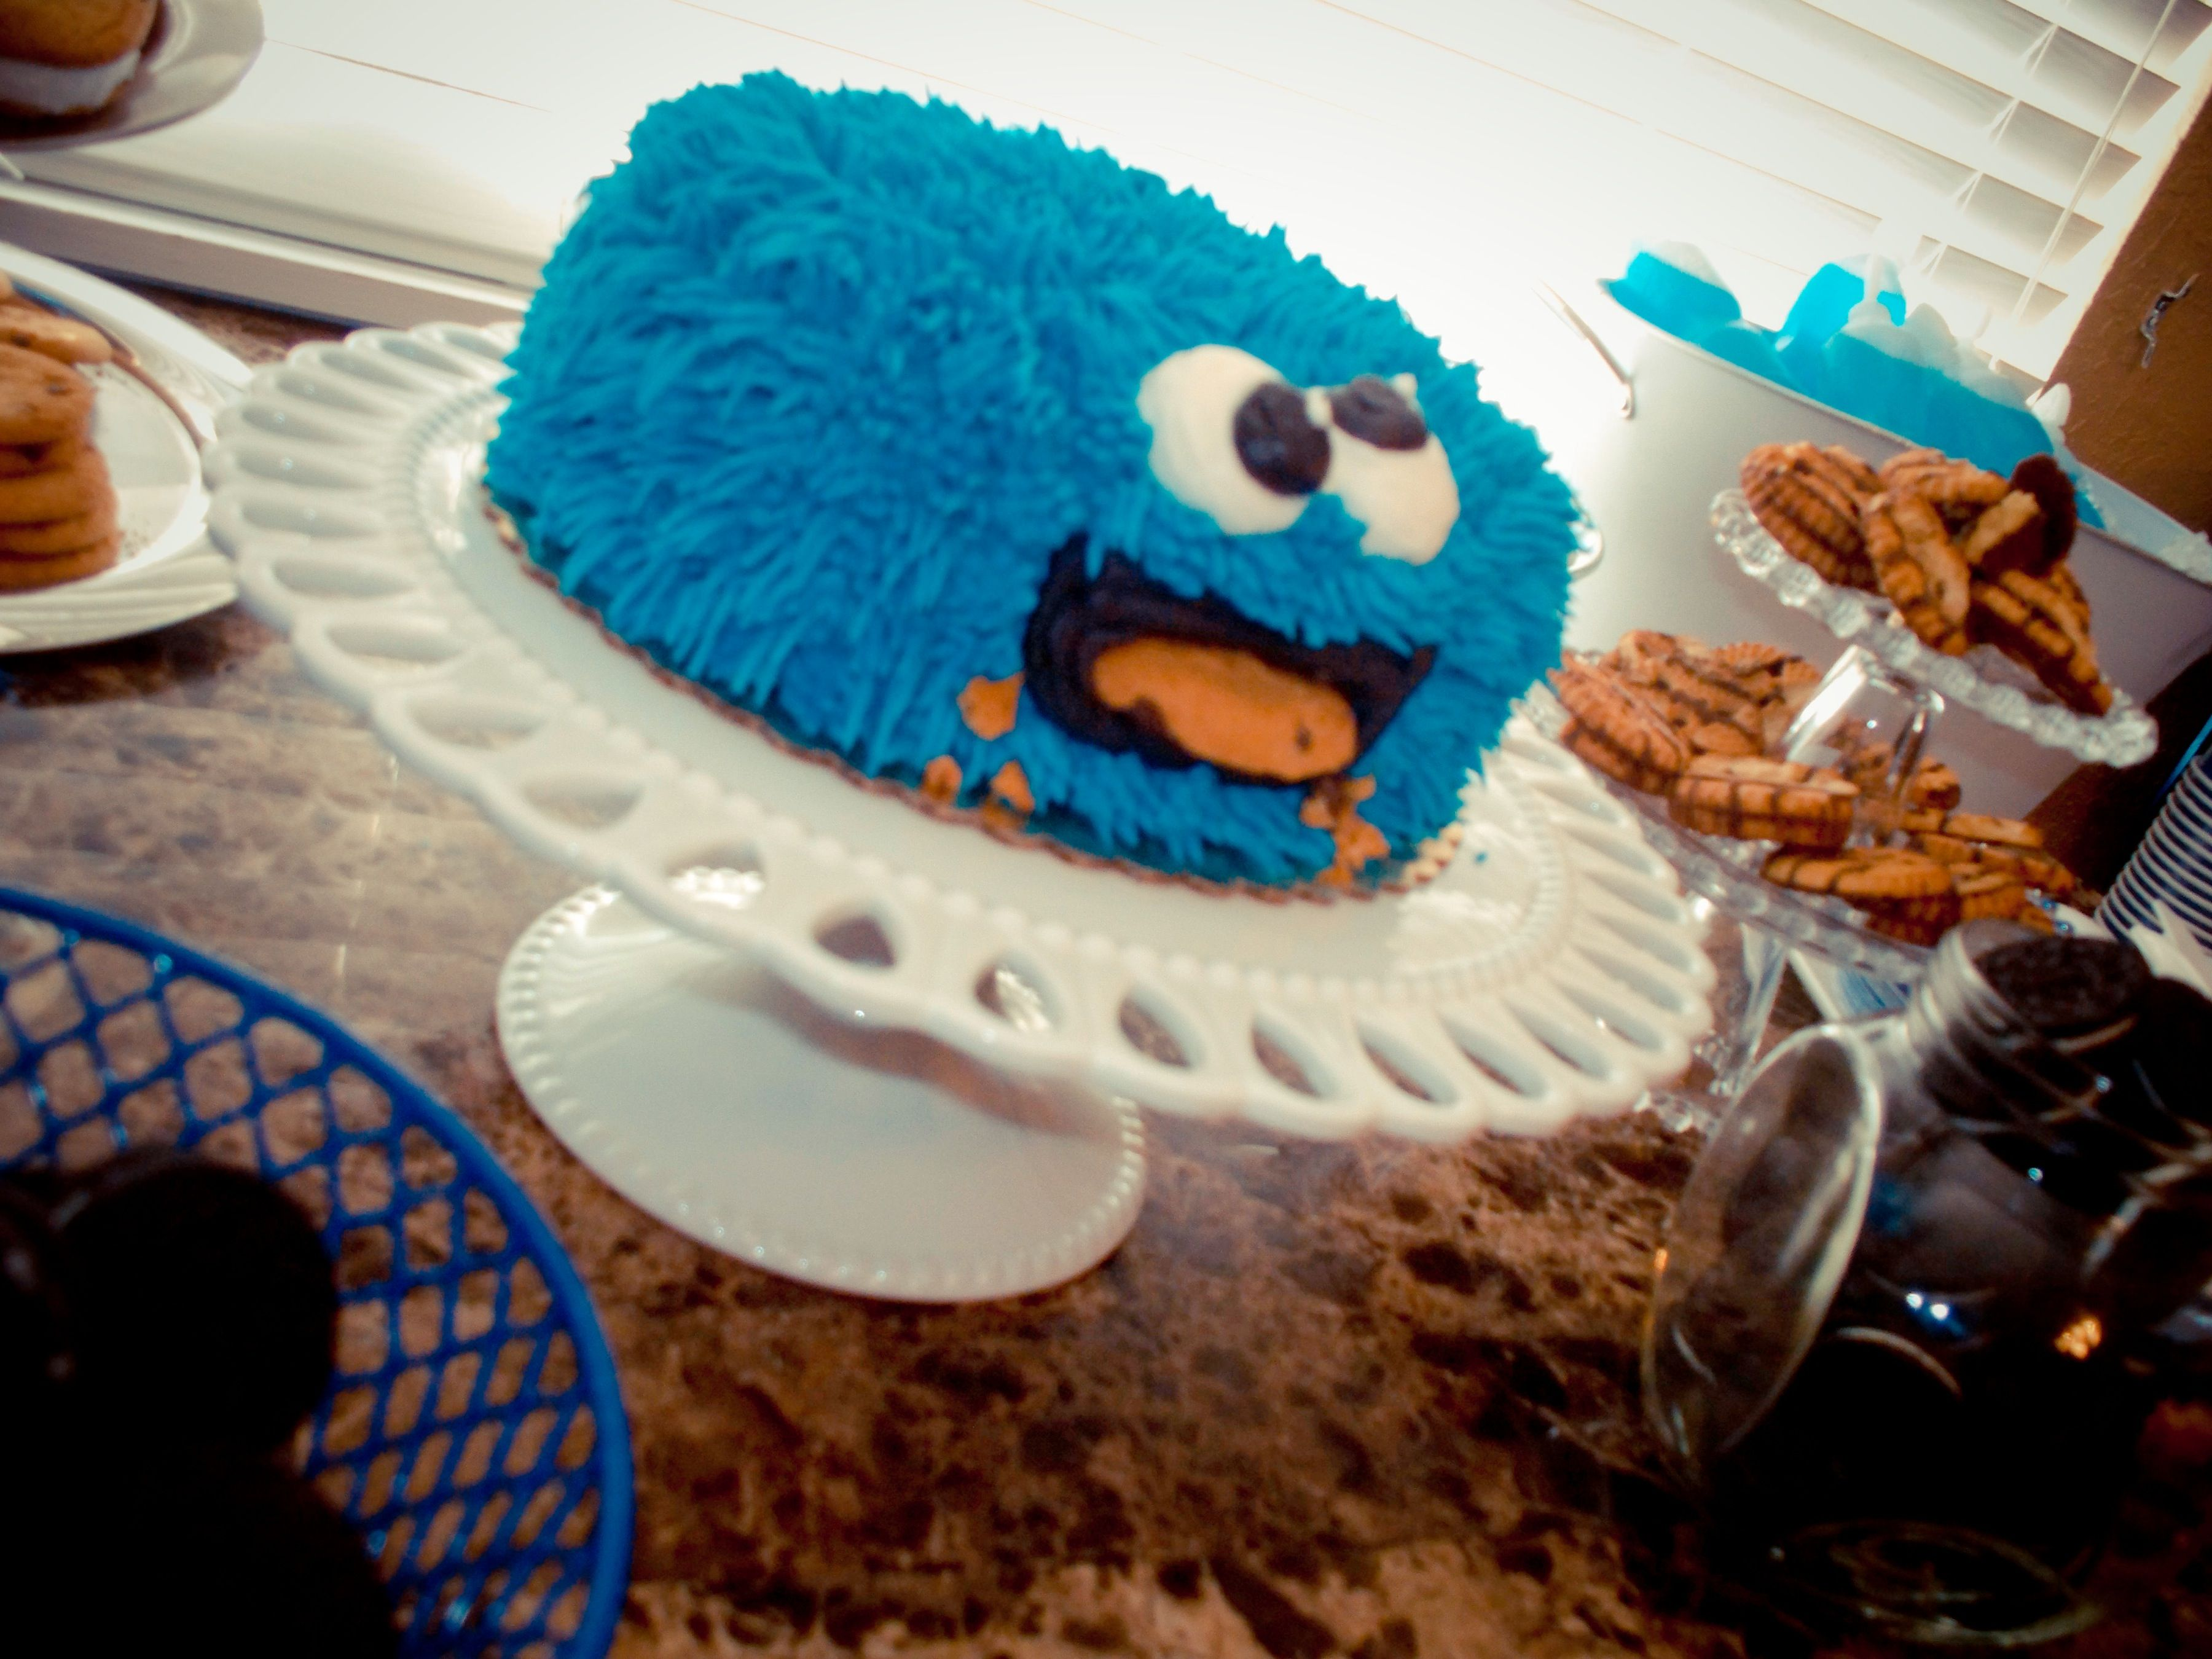 Cookie monster recipe cake